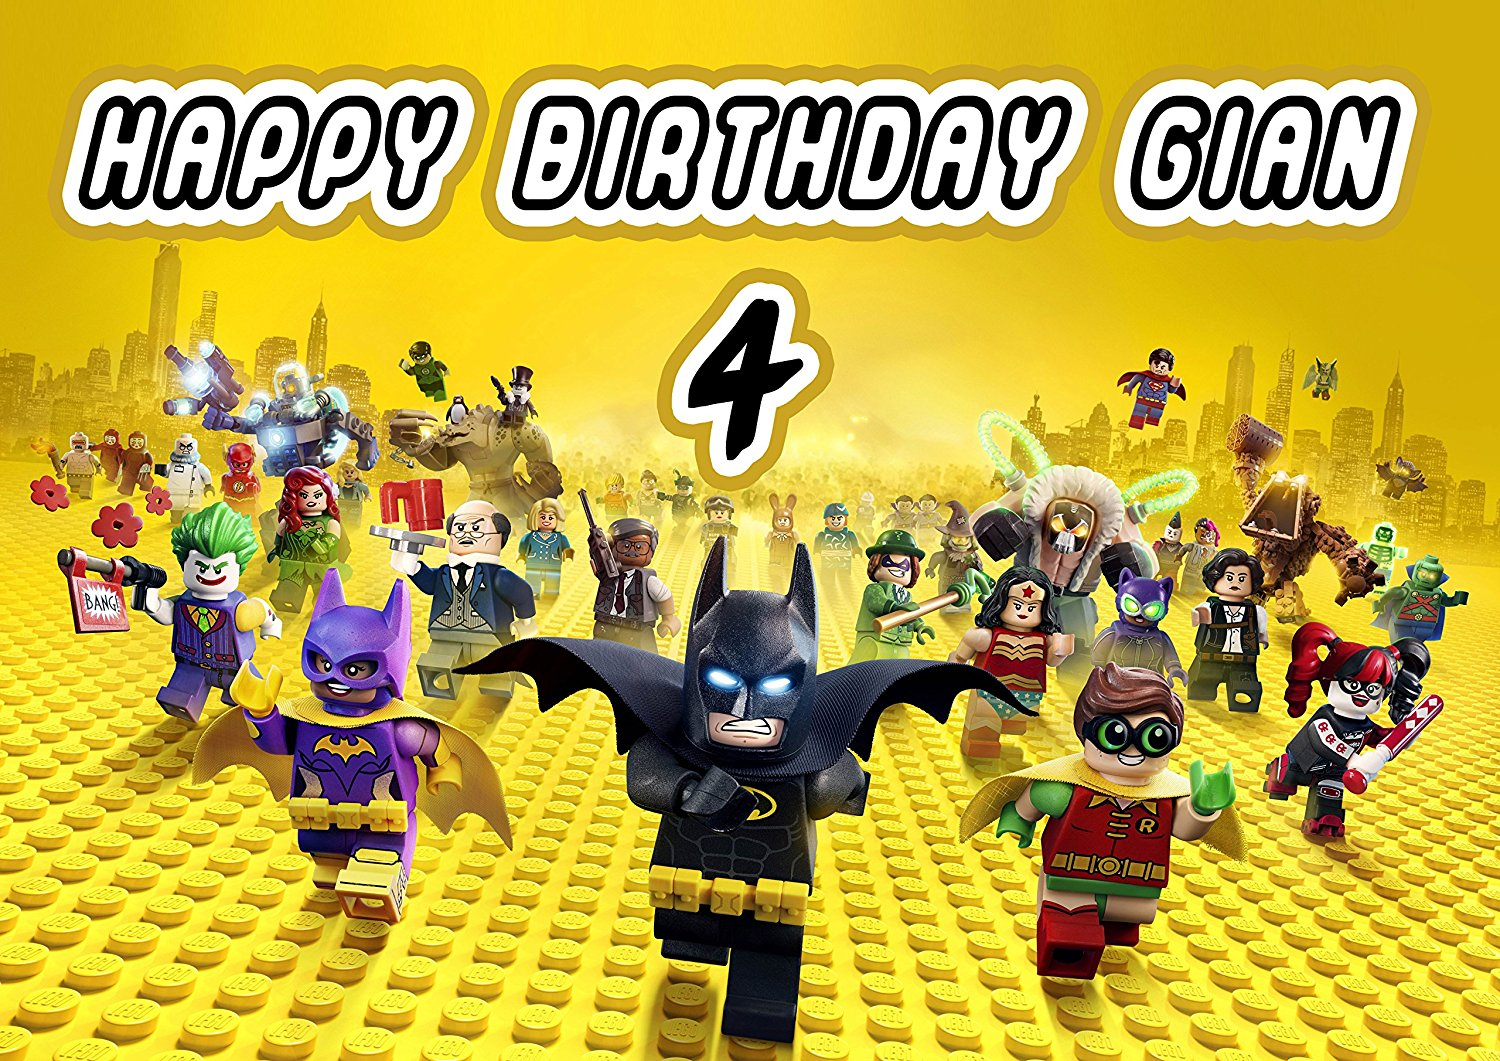 LEGO BATMAN Birthday Cake Personalized Cake Topper Edible Frosting